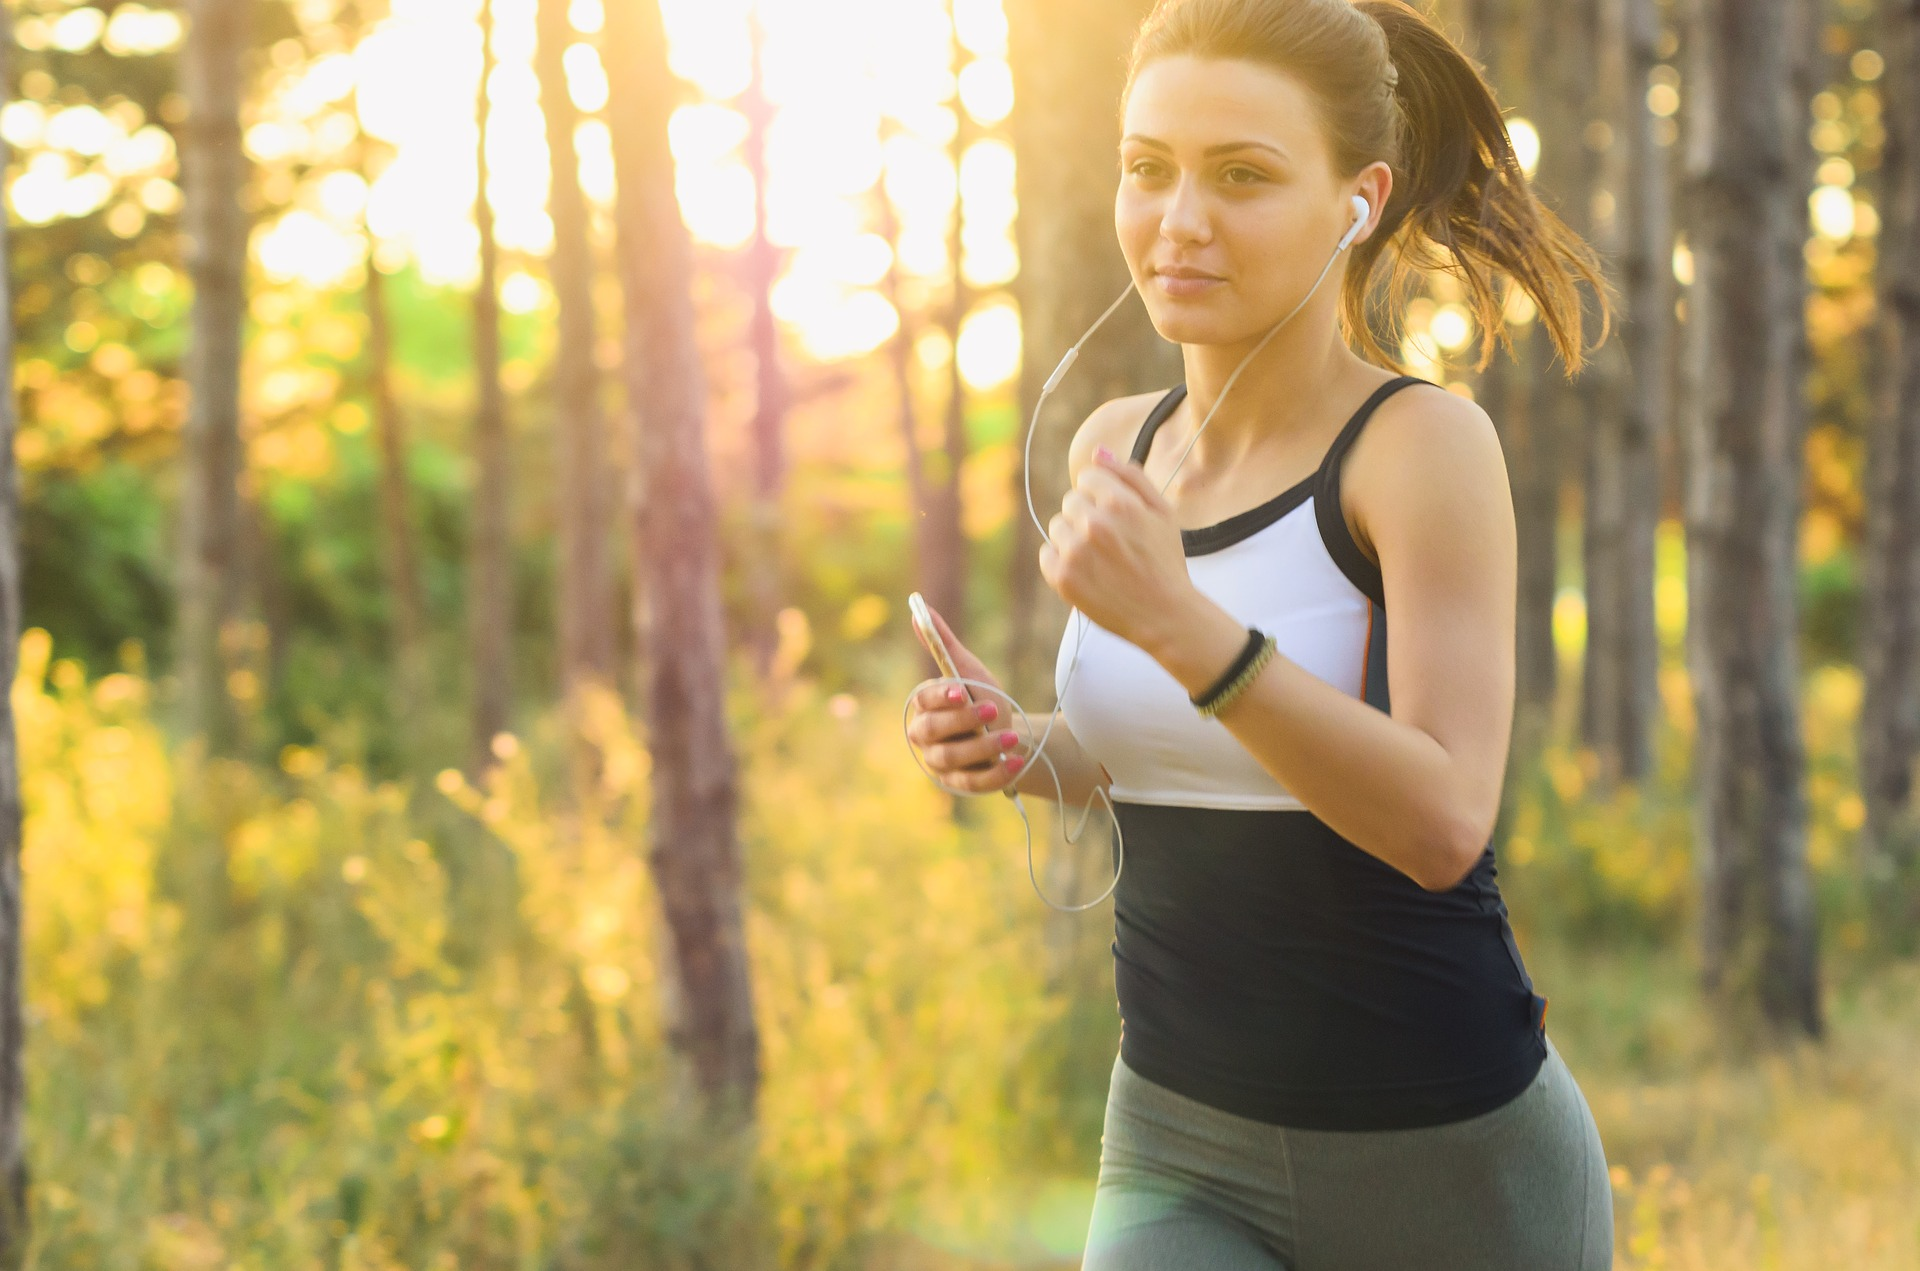 Picture of a woman running with earphones